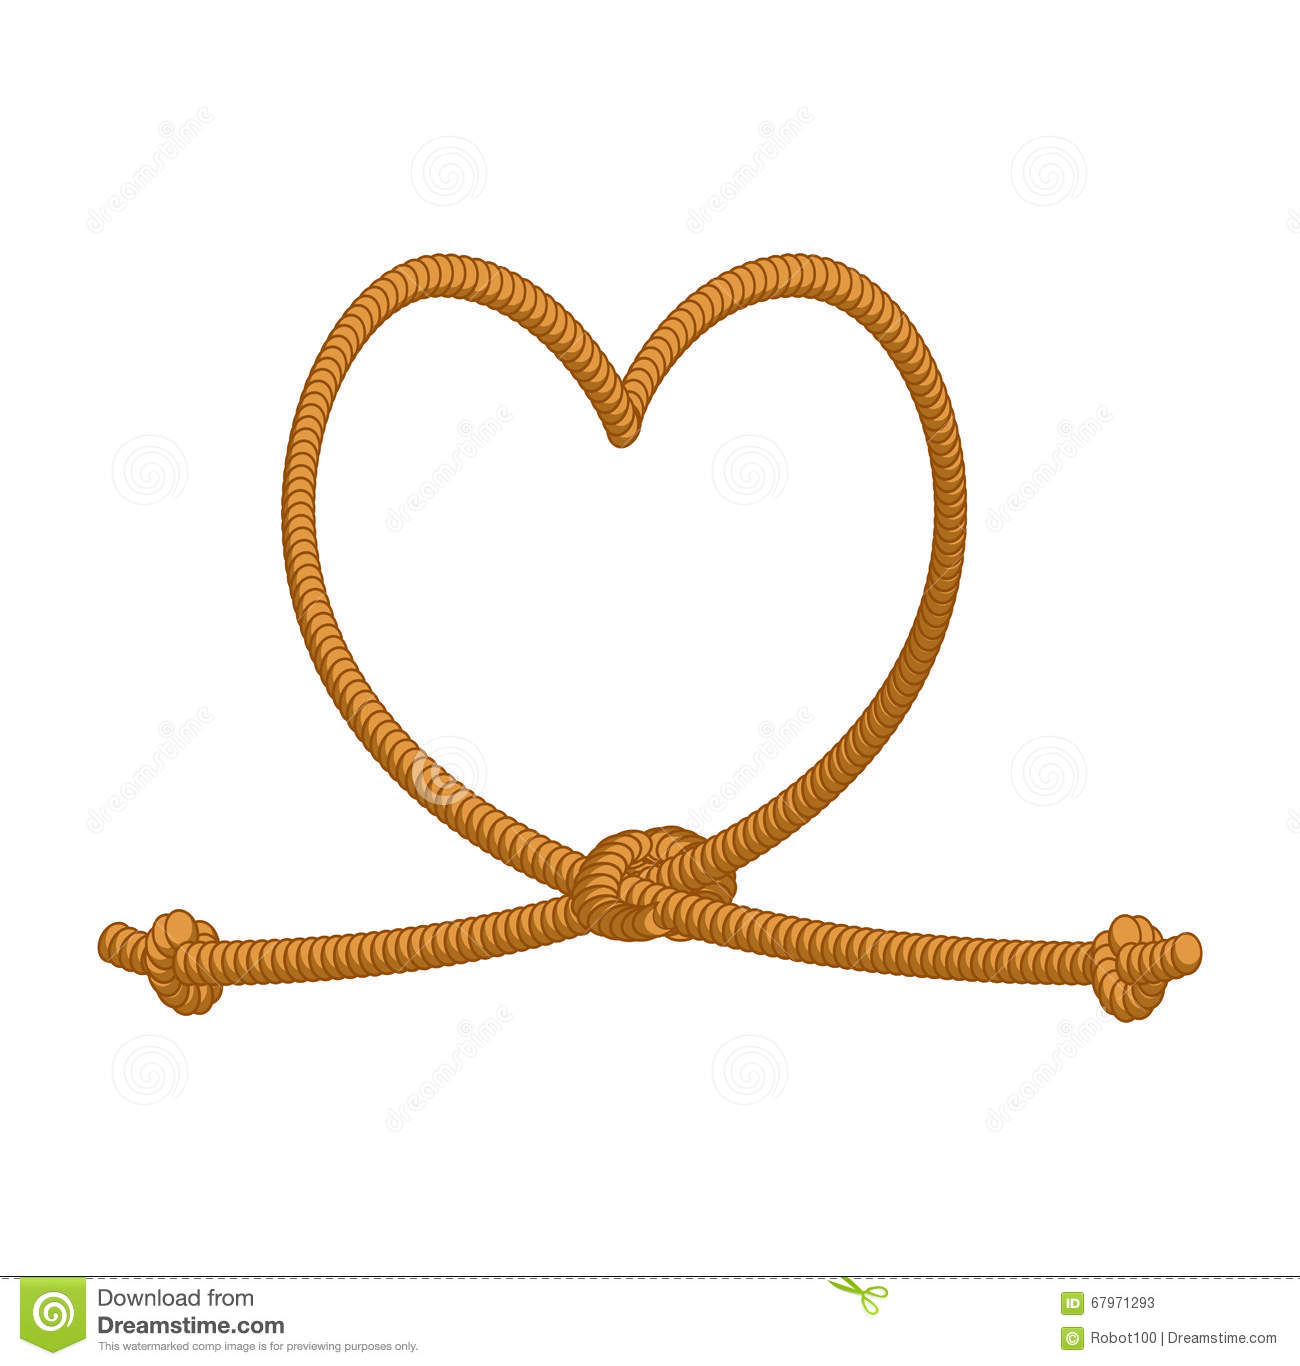 Heart Tie Rope Thick Rope Of Love Rope Love Symbol Of Eternal